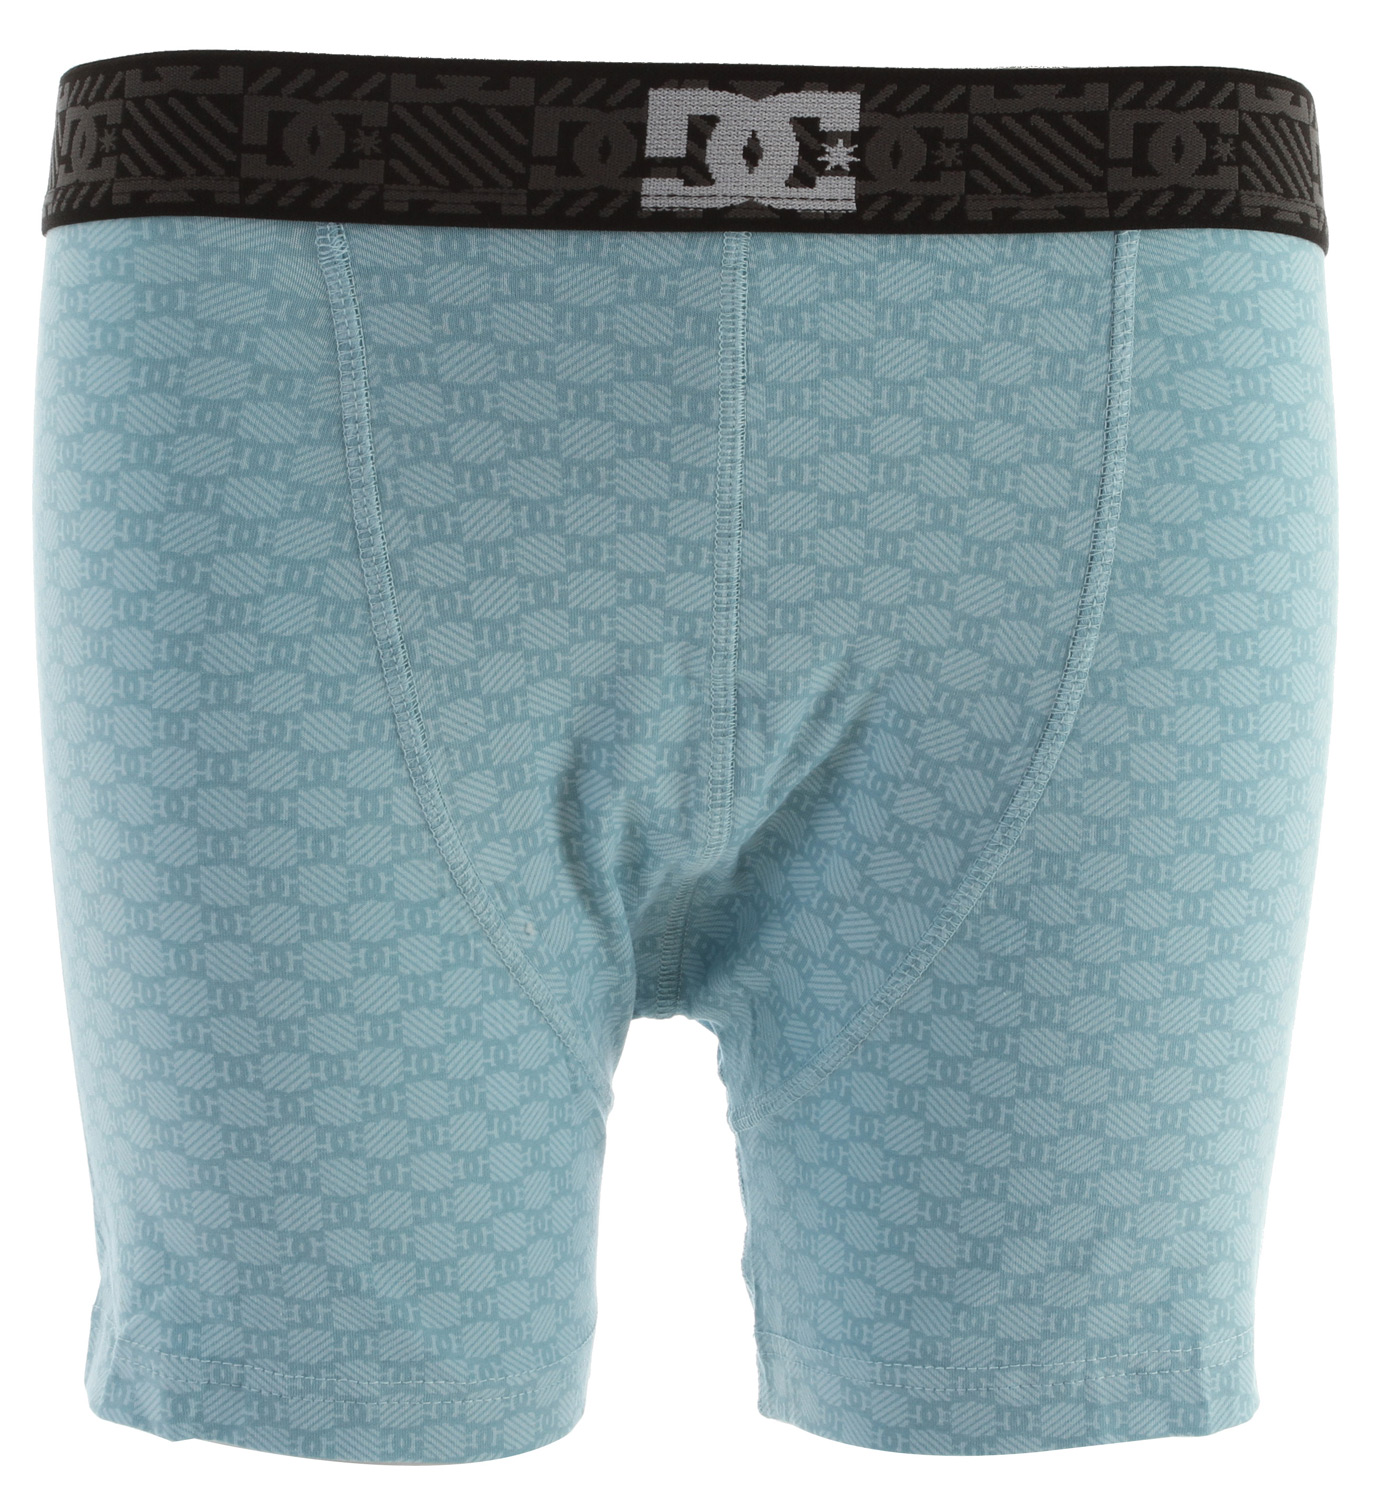 Skateboard Knit Boxer 90% Cotton/10% Spandex Knit boxer with contrast large logo on a bias at side of boxer jacquarded monogram waistband with front DC logo - $9.95